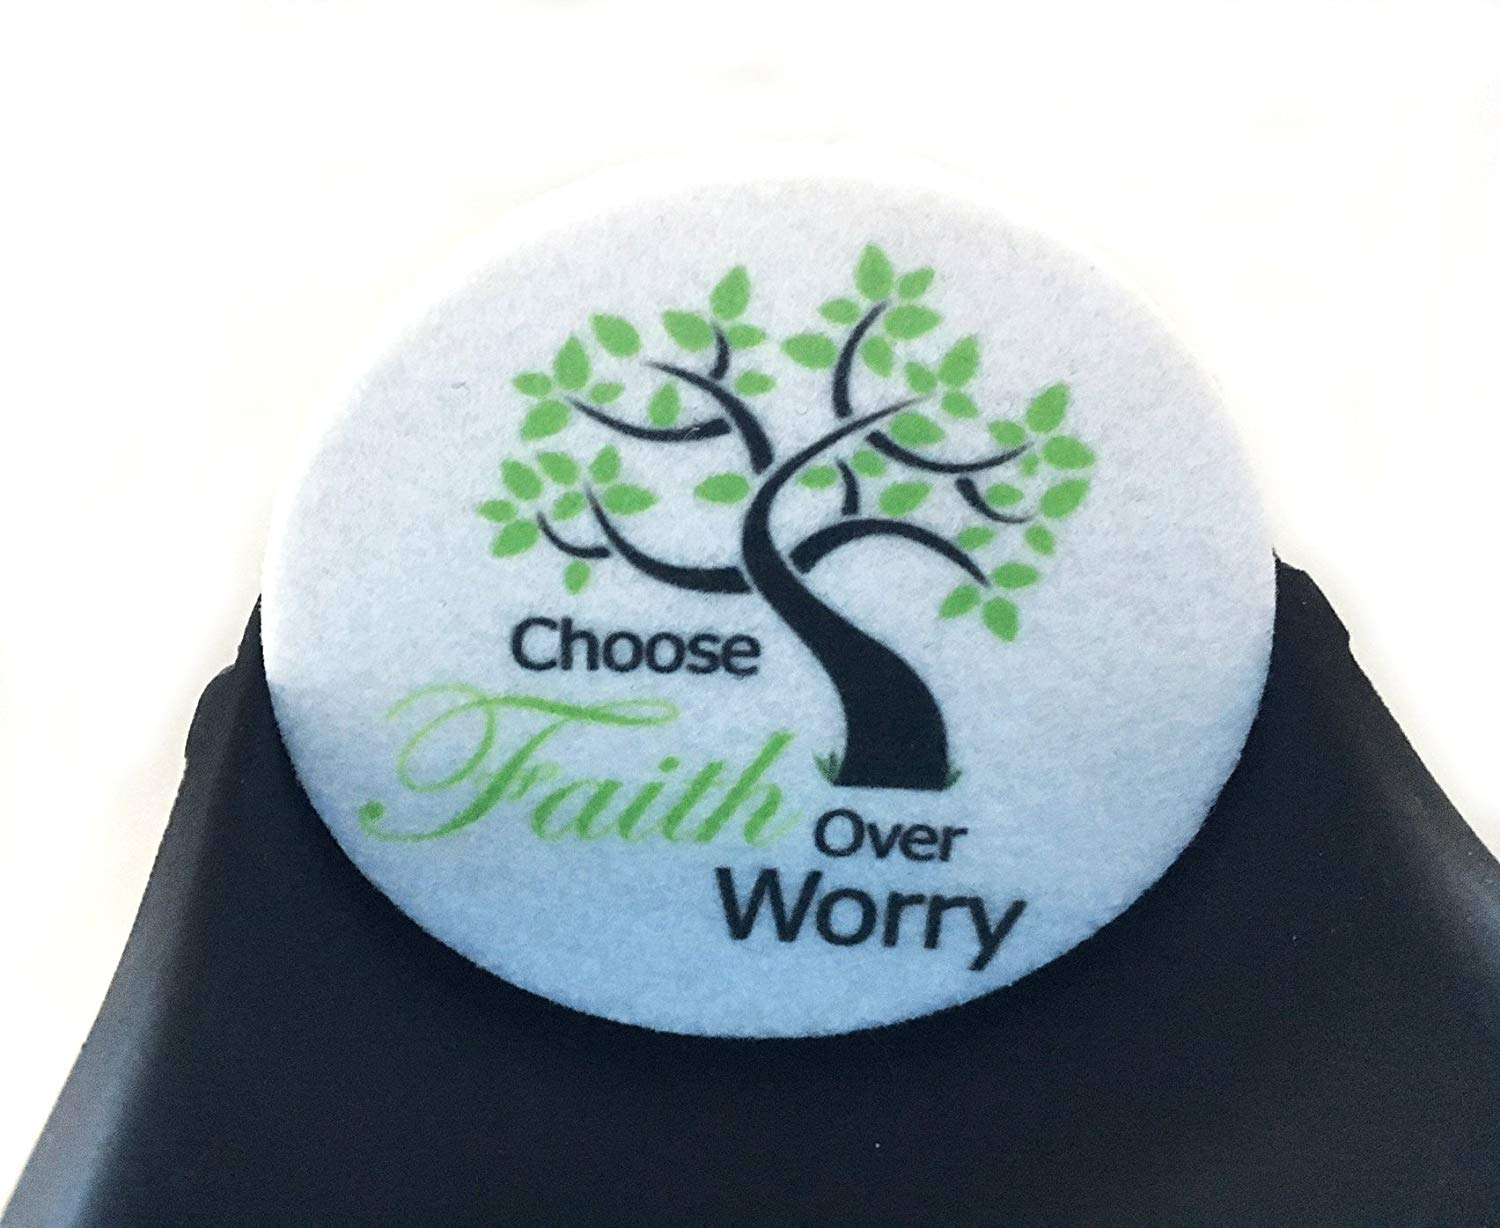 Choose Faith Over Worry Car coasters for your car's cup holder - Set of two super absorbent Car Coasters - Auto Coasters